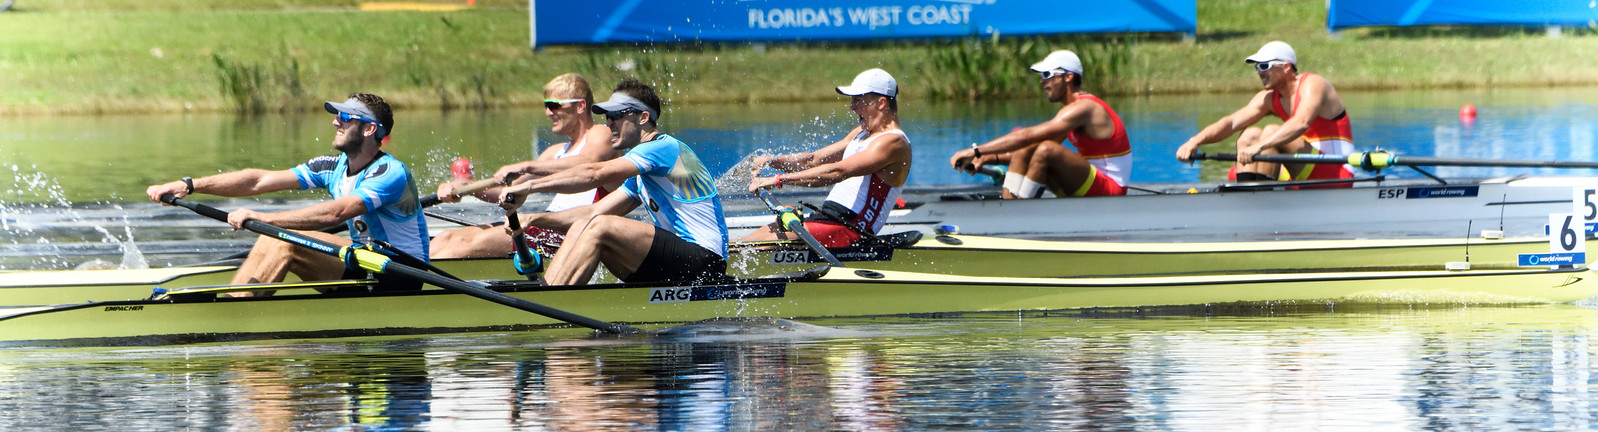 2017 World Rowing Championships, Sarasota, Florida, USA